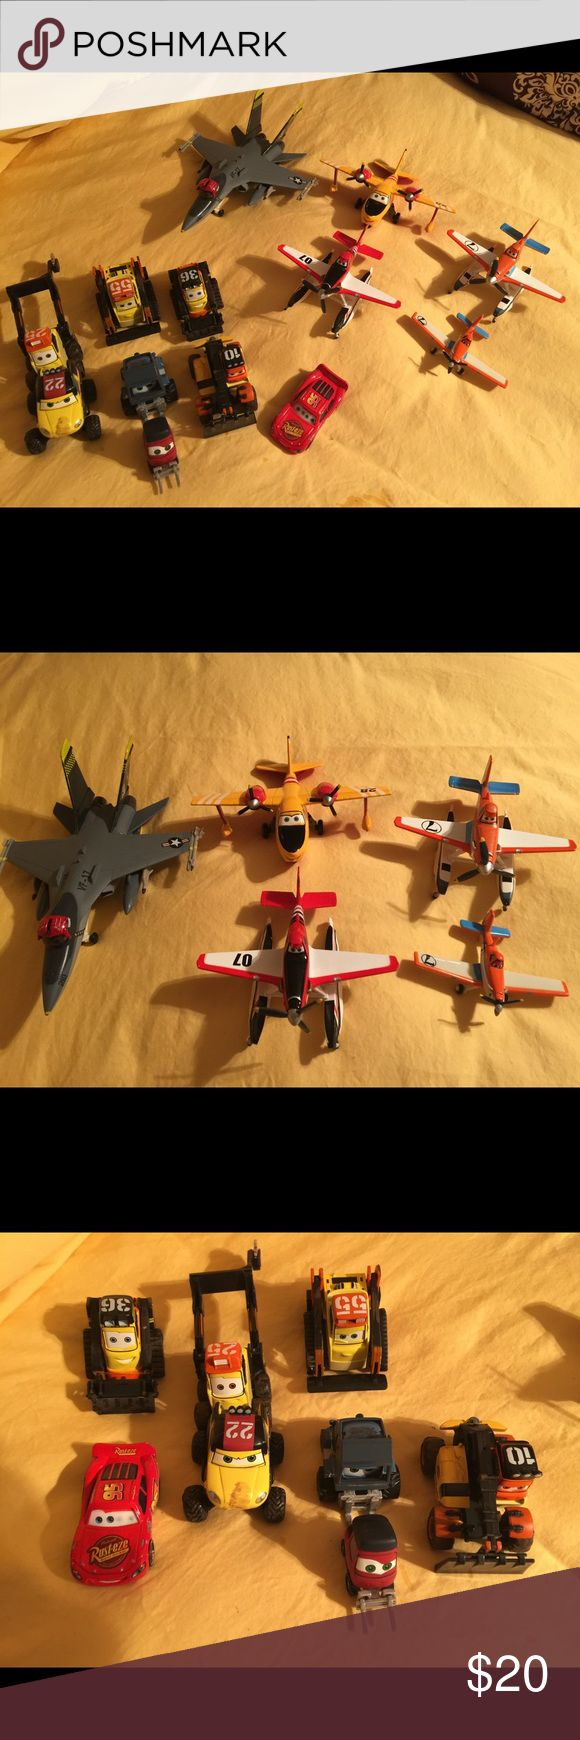 CARS AND PLANES MOVIES CARS AND PLANES DIECAST FIGURES ALL IN EXCELLENT CONDITION!! Disney Other